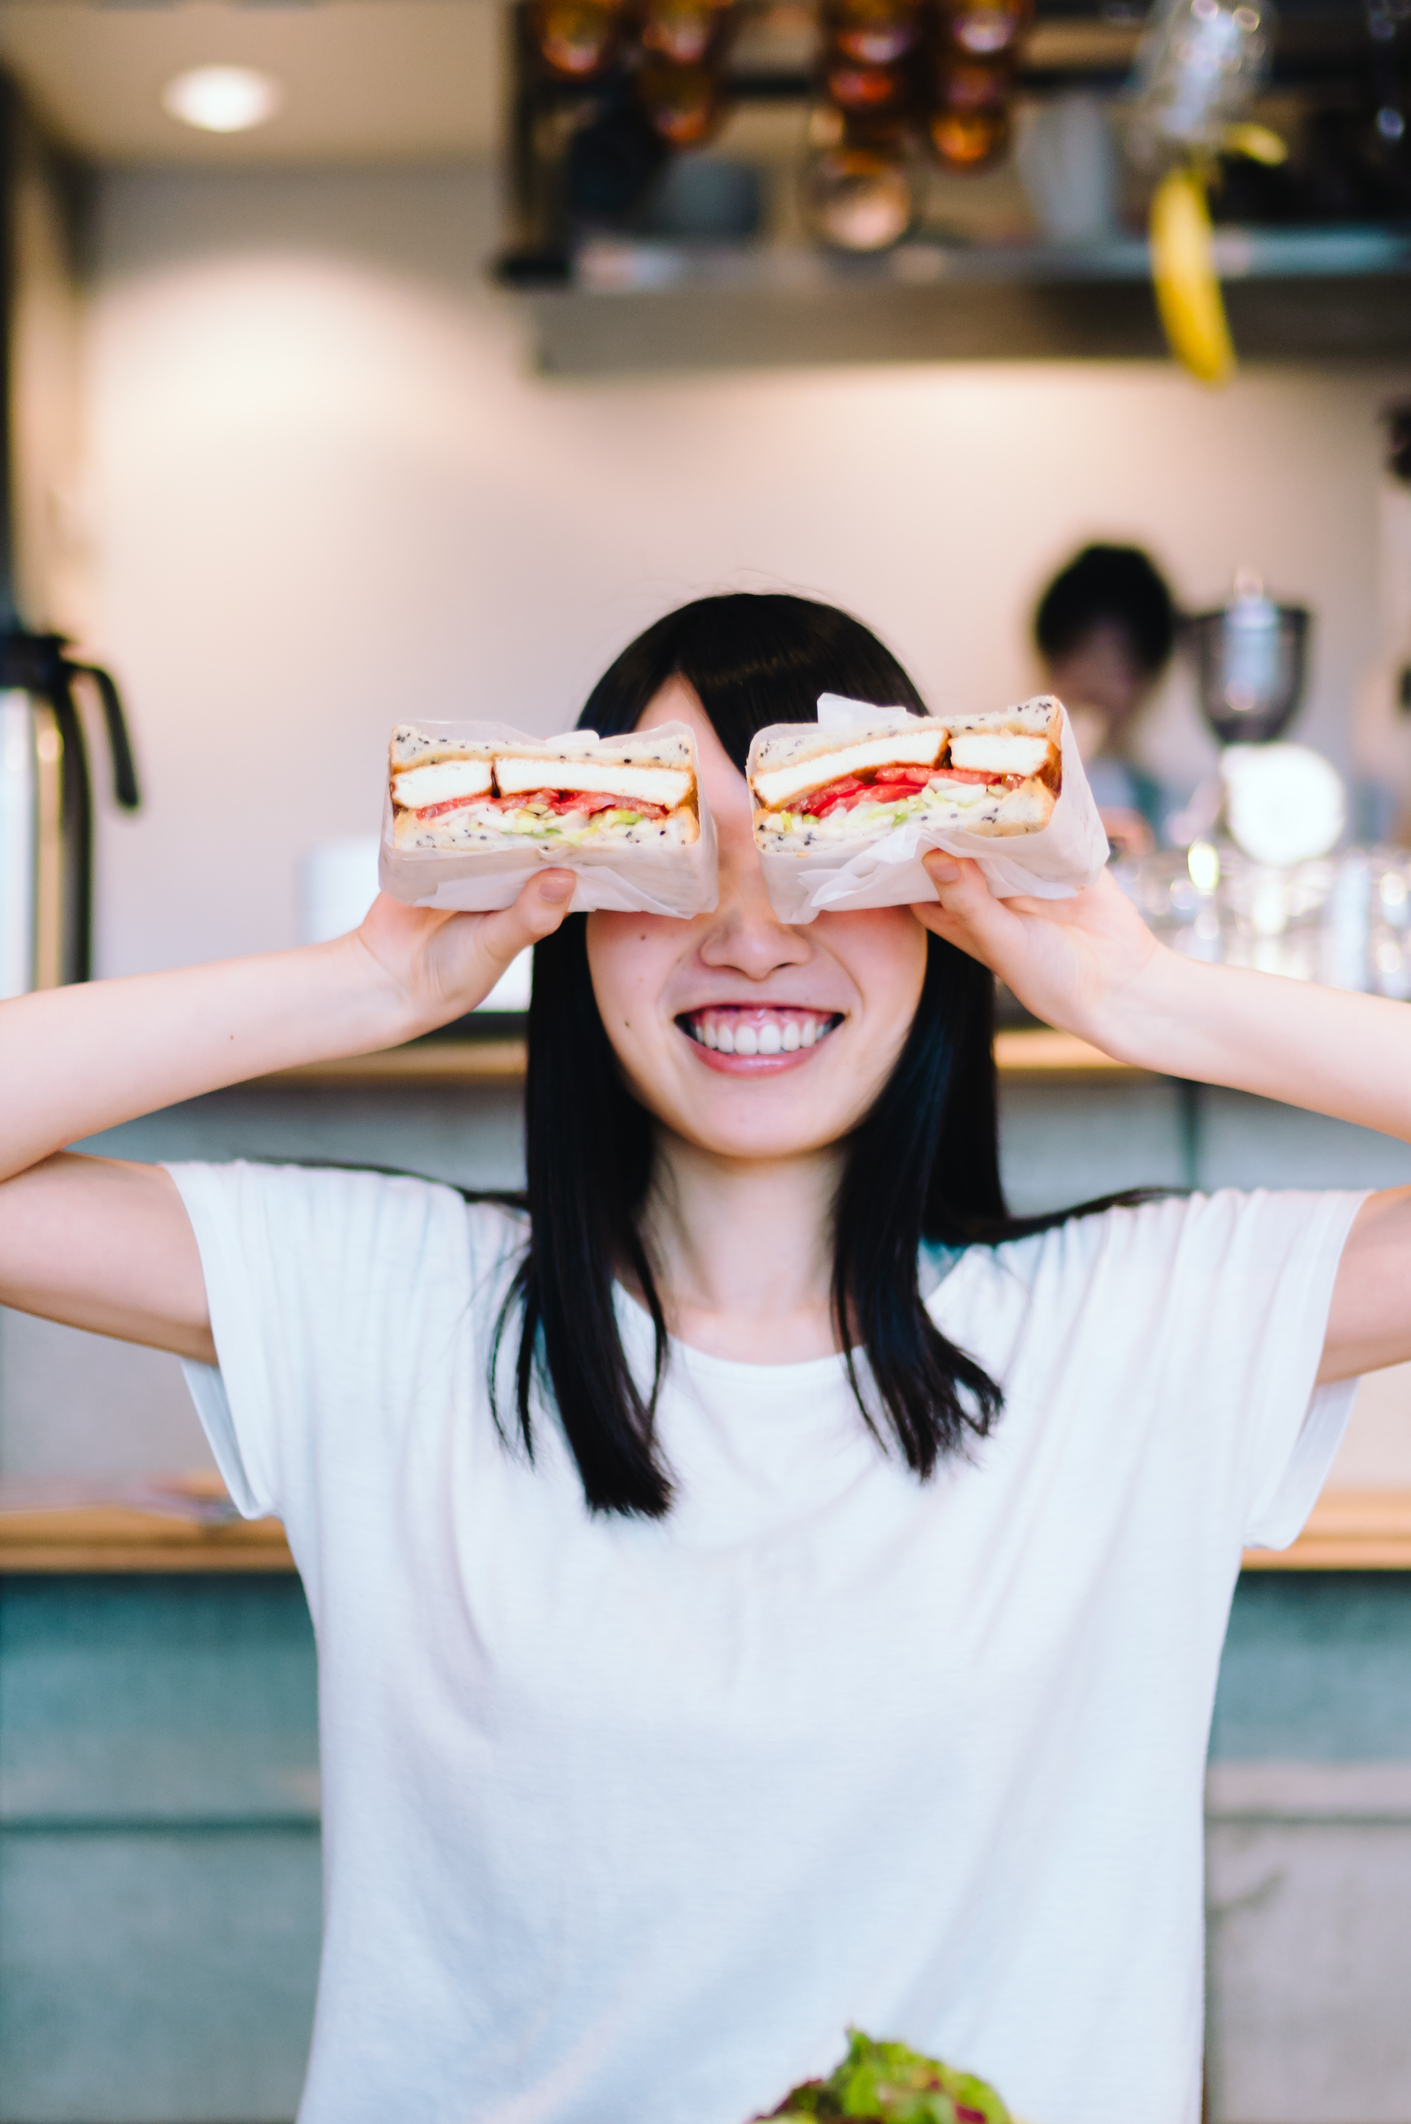 3 Health Tips I Learned In Japan That Helped Me Lose 18 Kilos - Losing Weight Japan - Woman holding two katsu sandwich